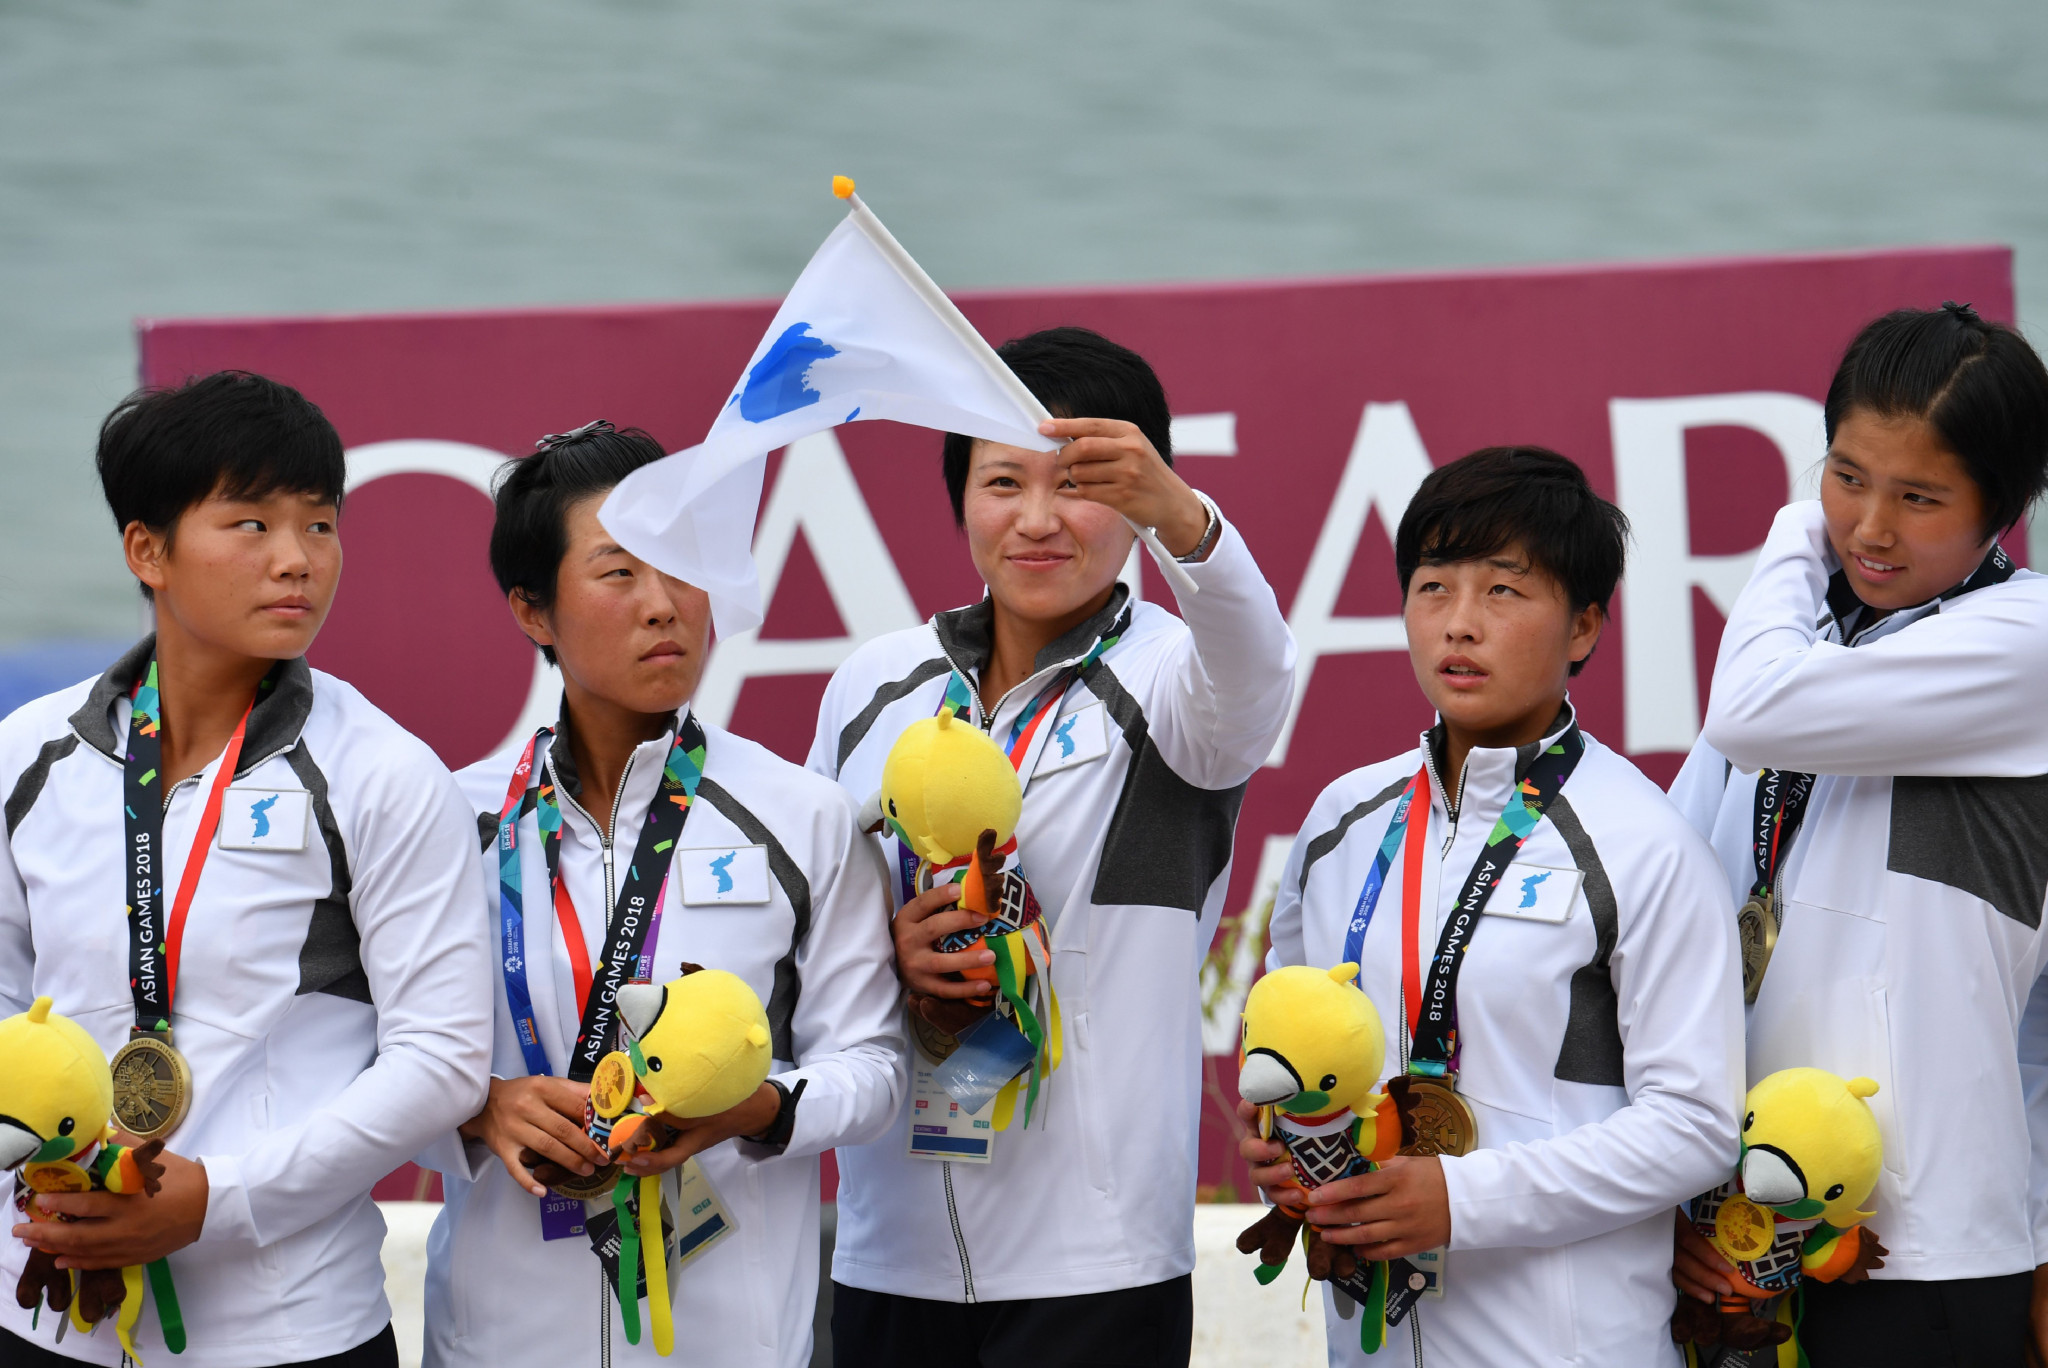 Unified Korean team win dragon boat bronze medal on historic day at 2018 Asian Games